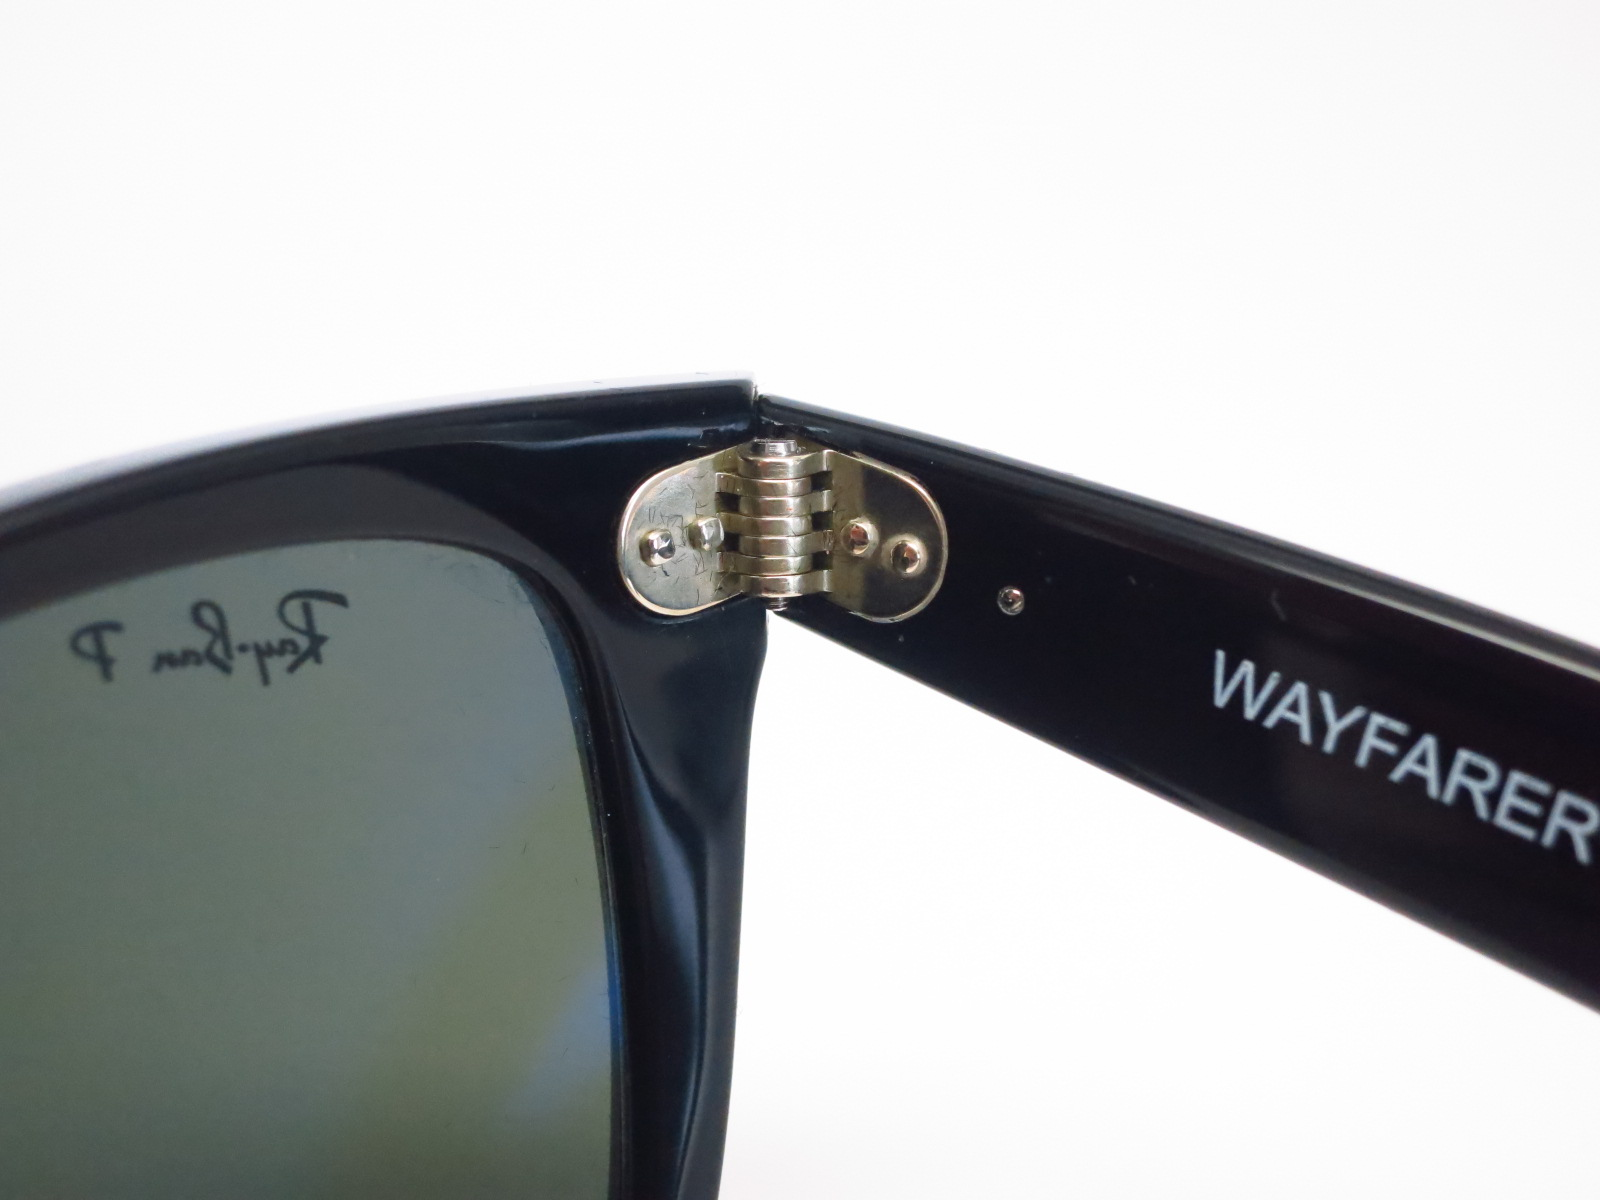 ray ban wayfarer 2140 50mm polarized  Ray-Ban RB 2140 Original Wayfarer 901/58 Shiny Black Polarized ...